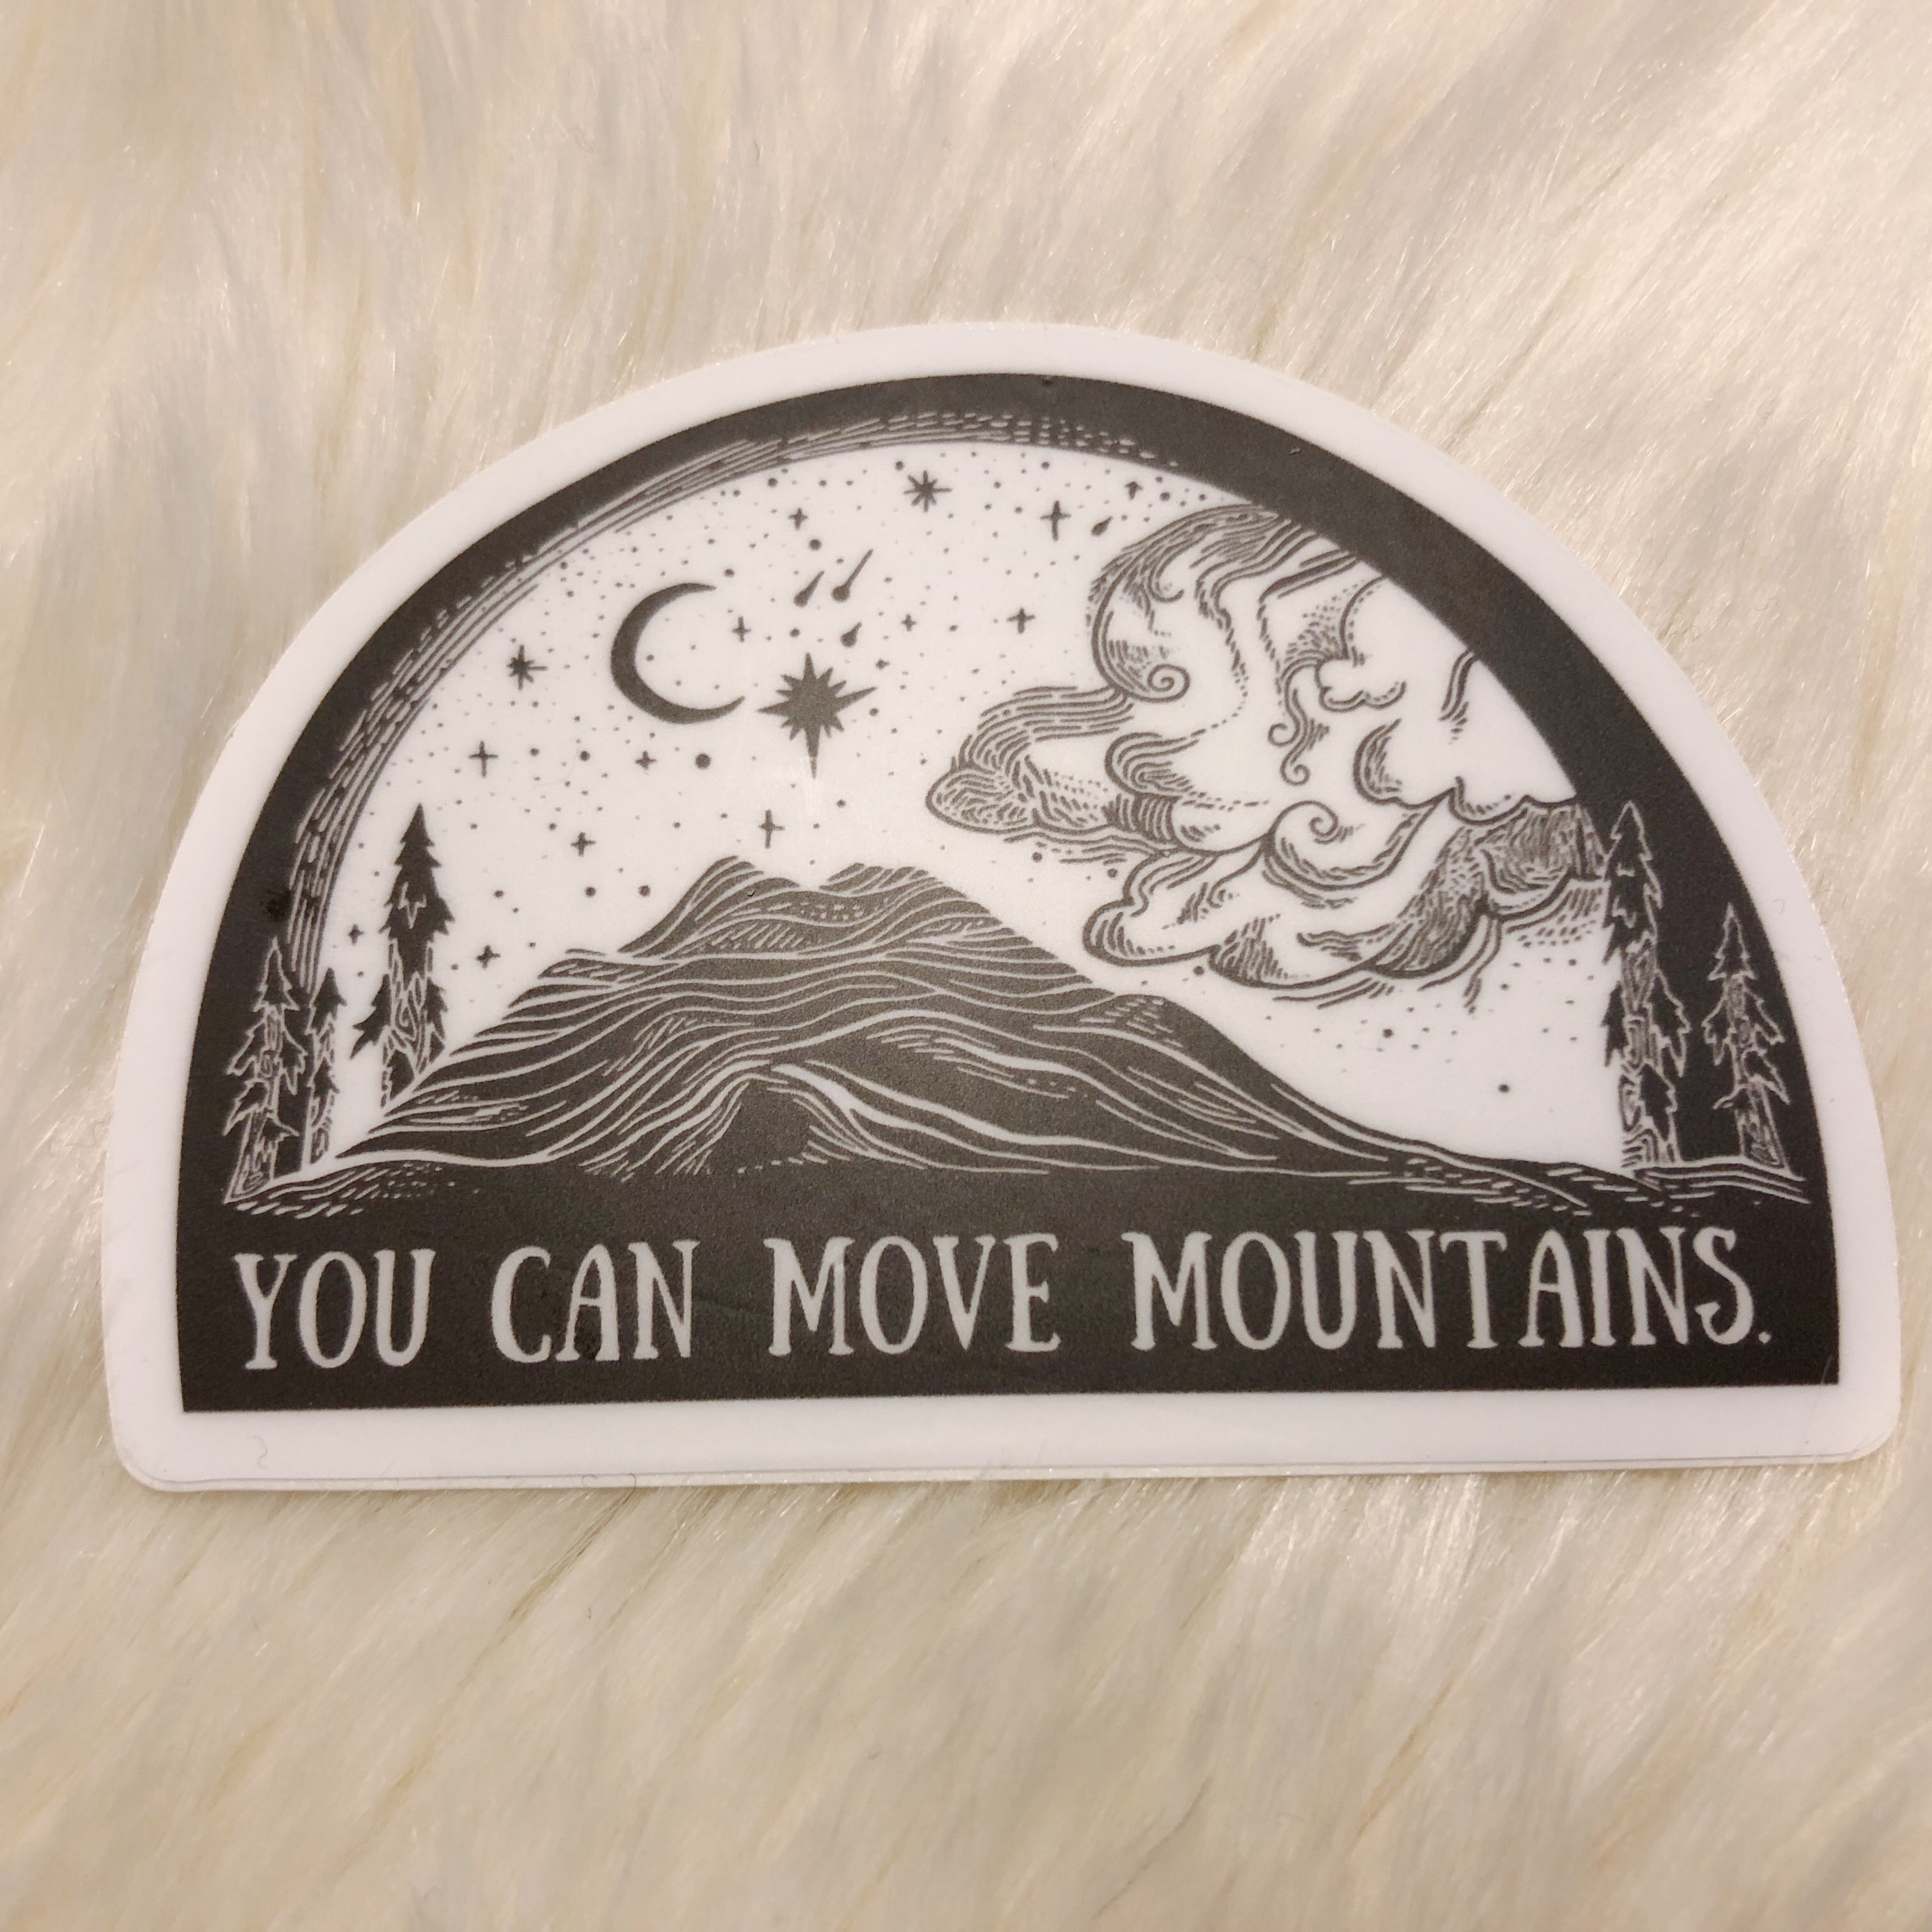 Vinyl Sticker - You Can Move Mountains 5""